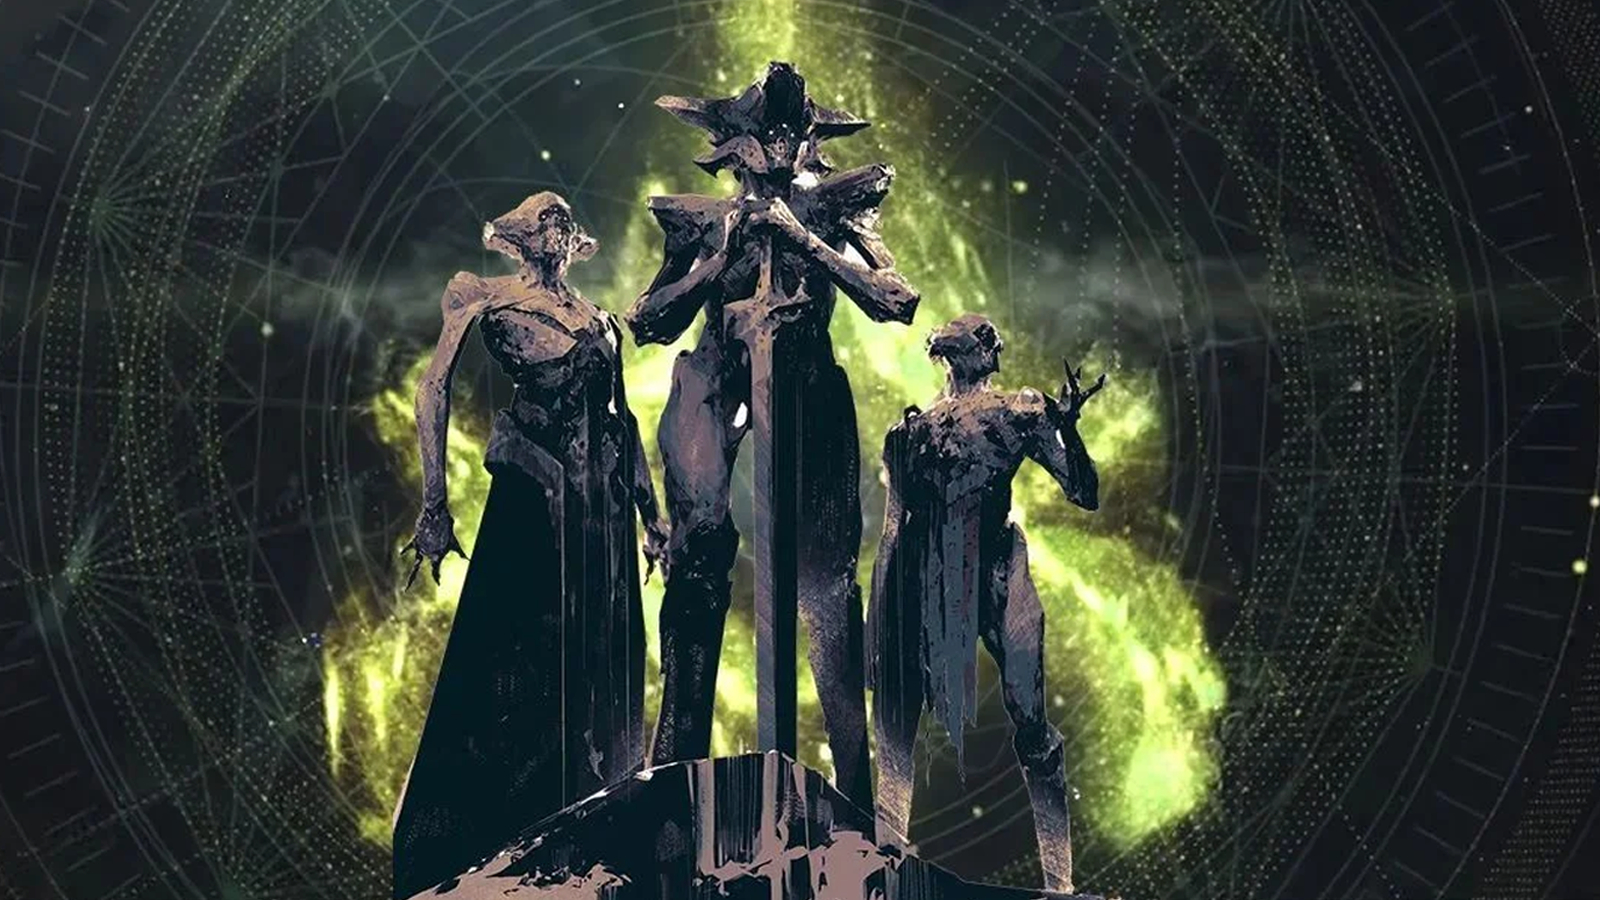 Destiny 2 expansion The Witch Queen has been delayed.